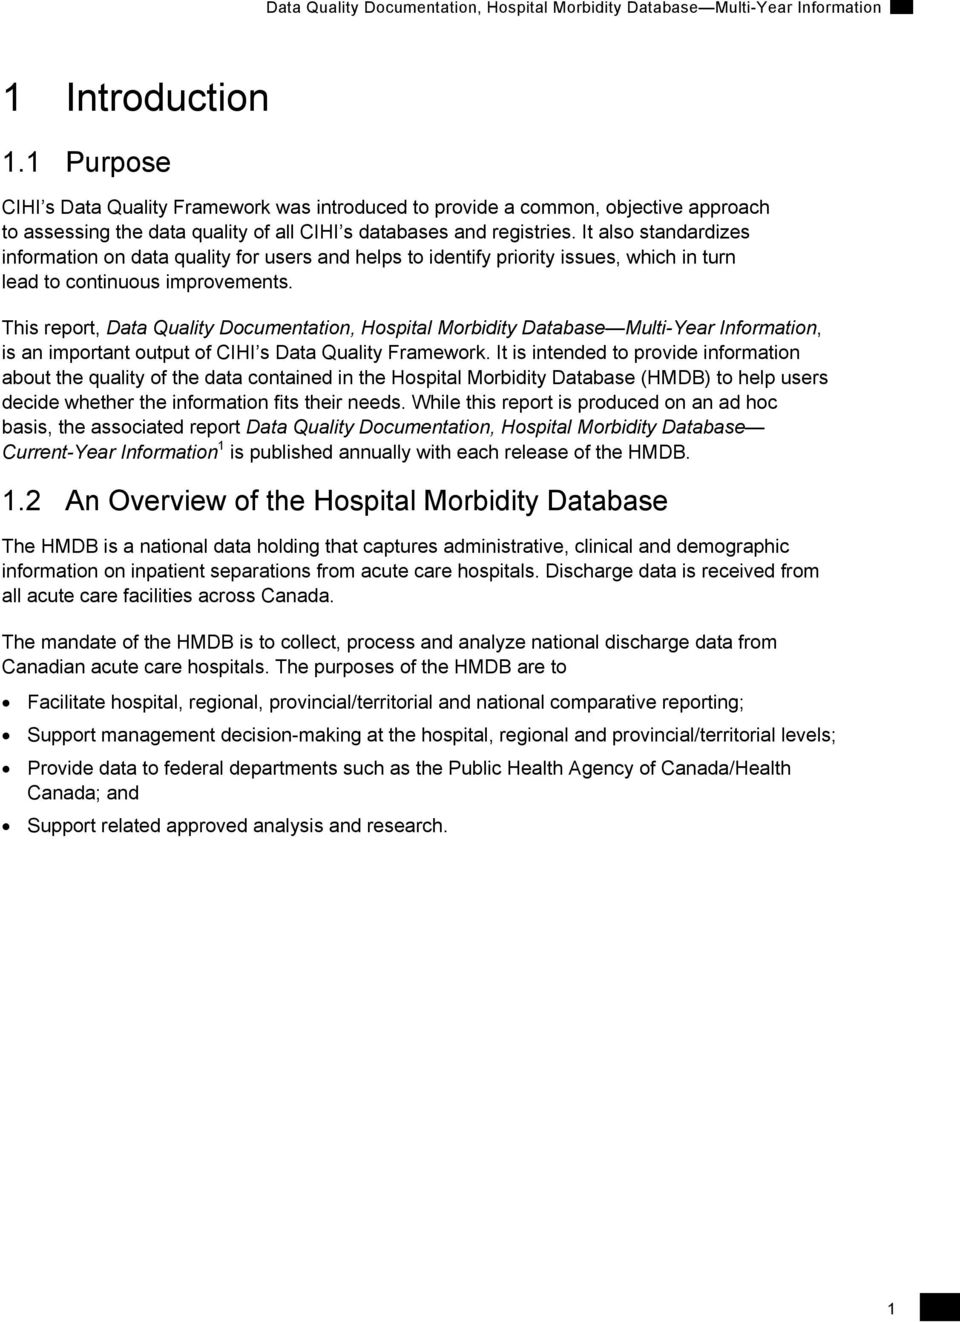 This report, Data Quality Documentation, Hospital Morbidity Database Multi-Year Information, is an important output of CIHI s Data Quality Framework.